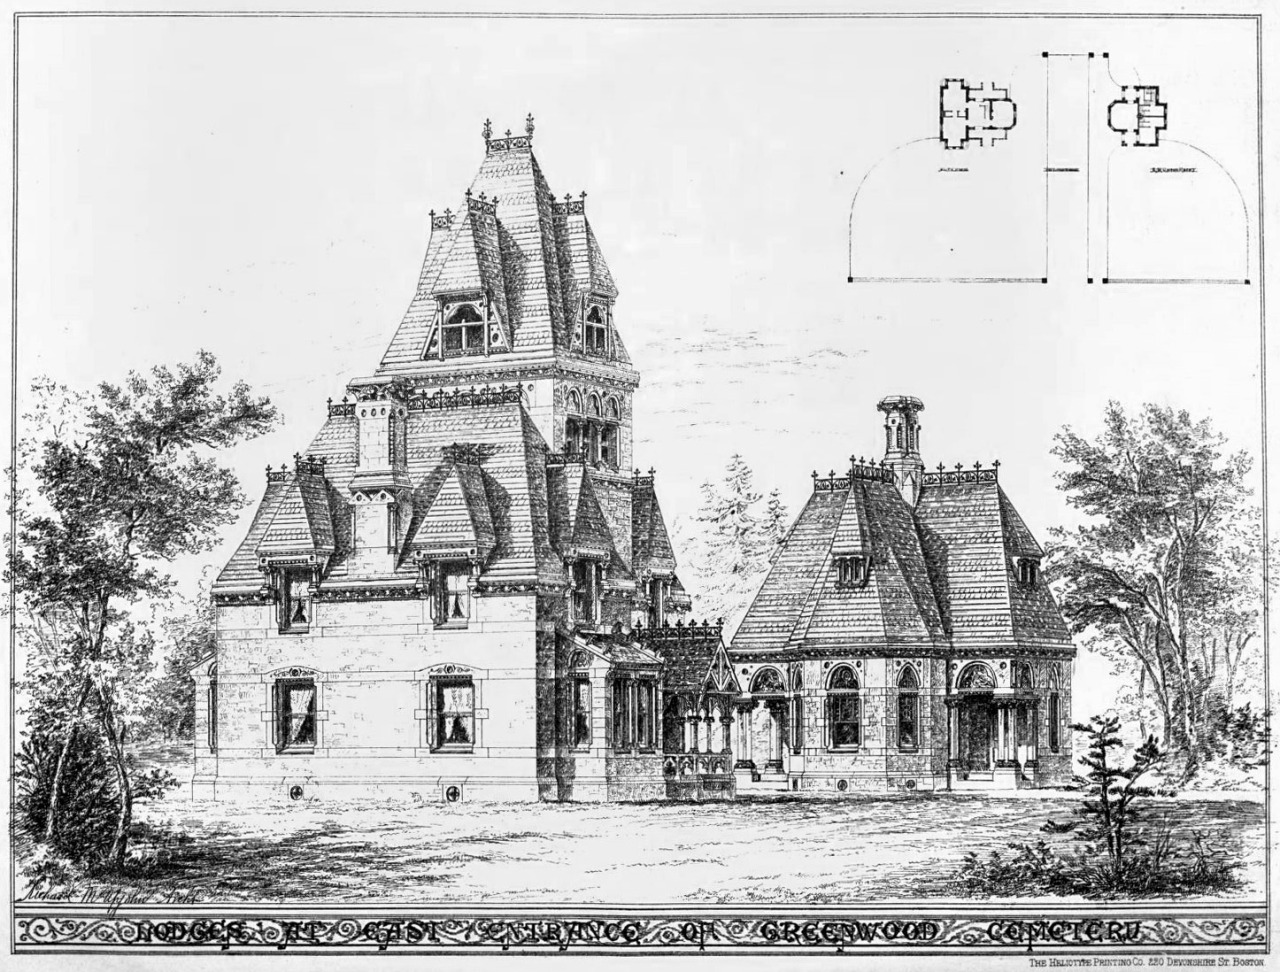 Design for lodges at the East Entrance of Greenwood Cemetery, Brooklyn